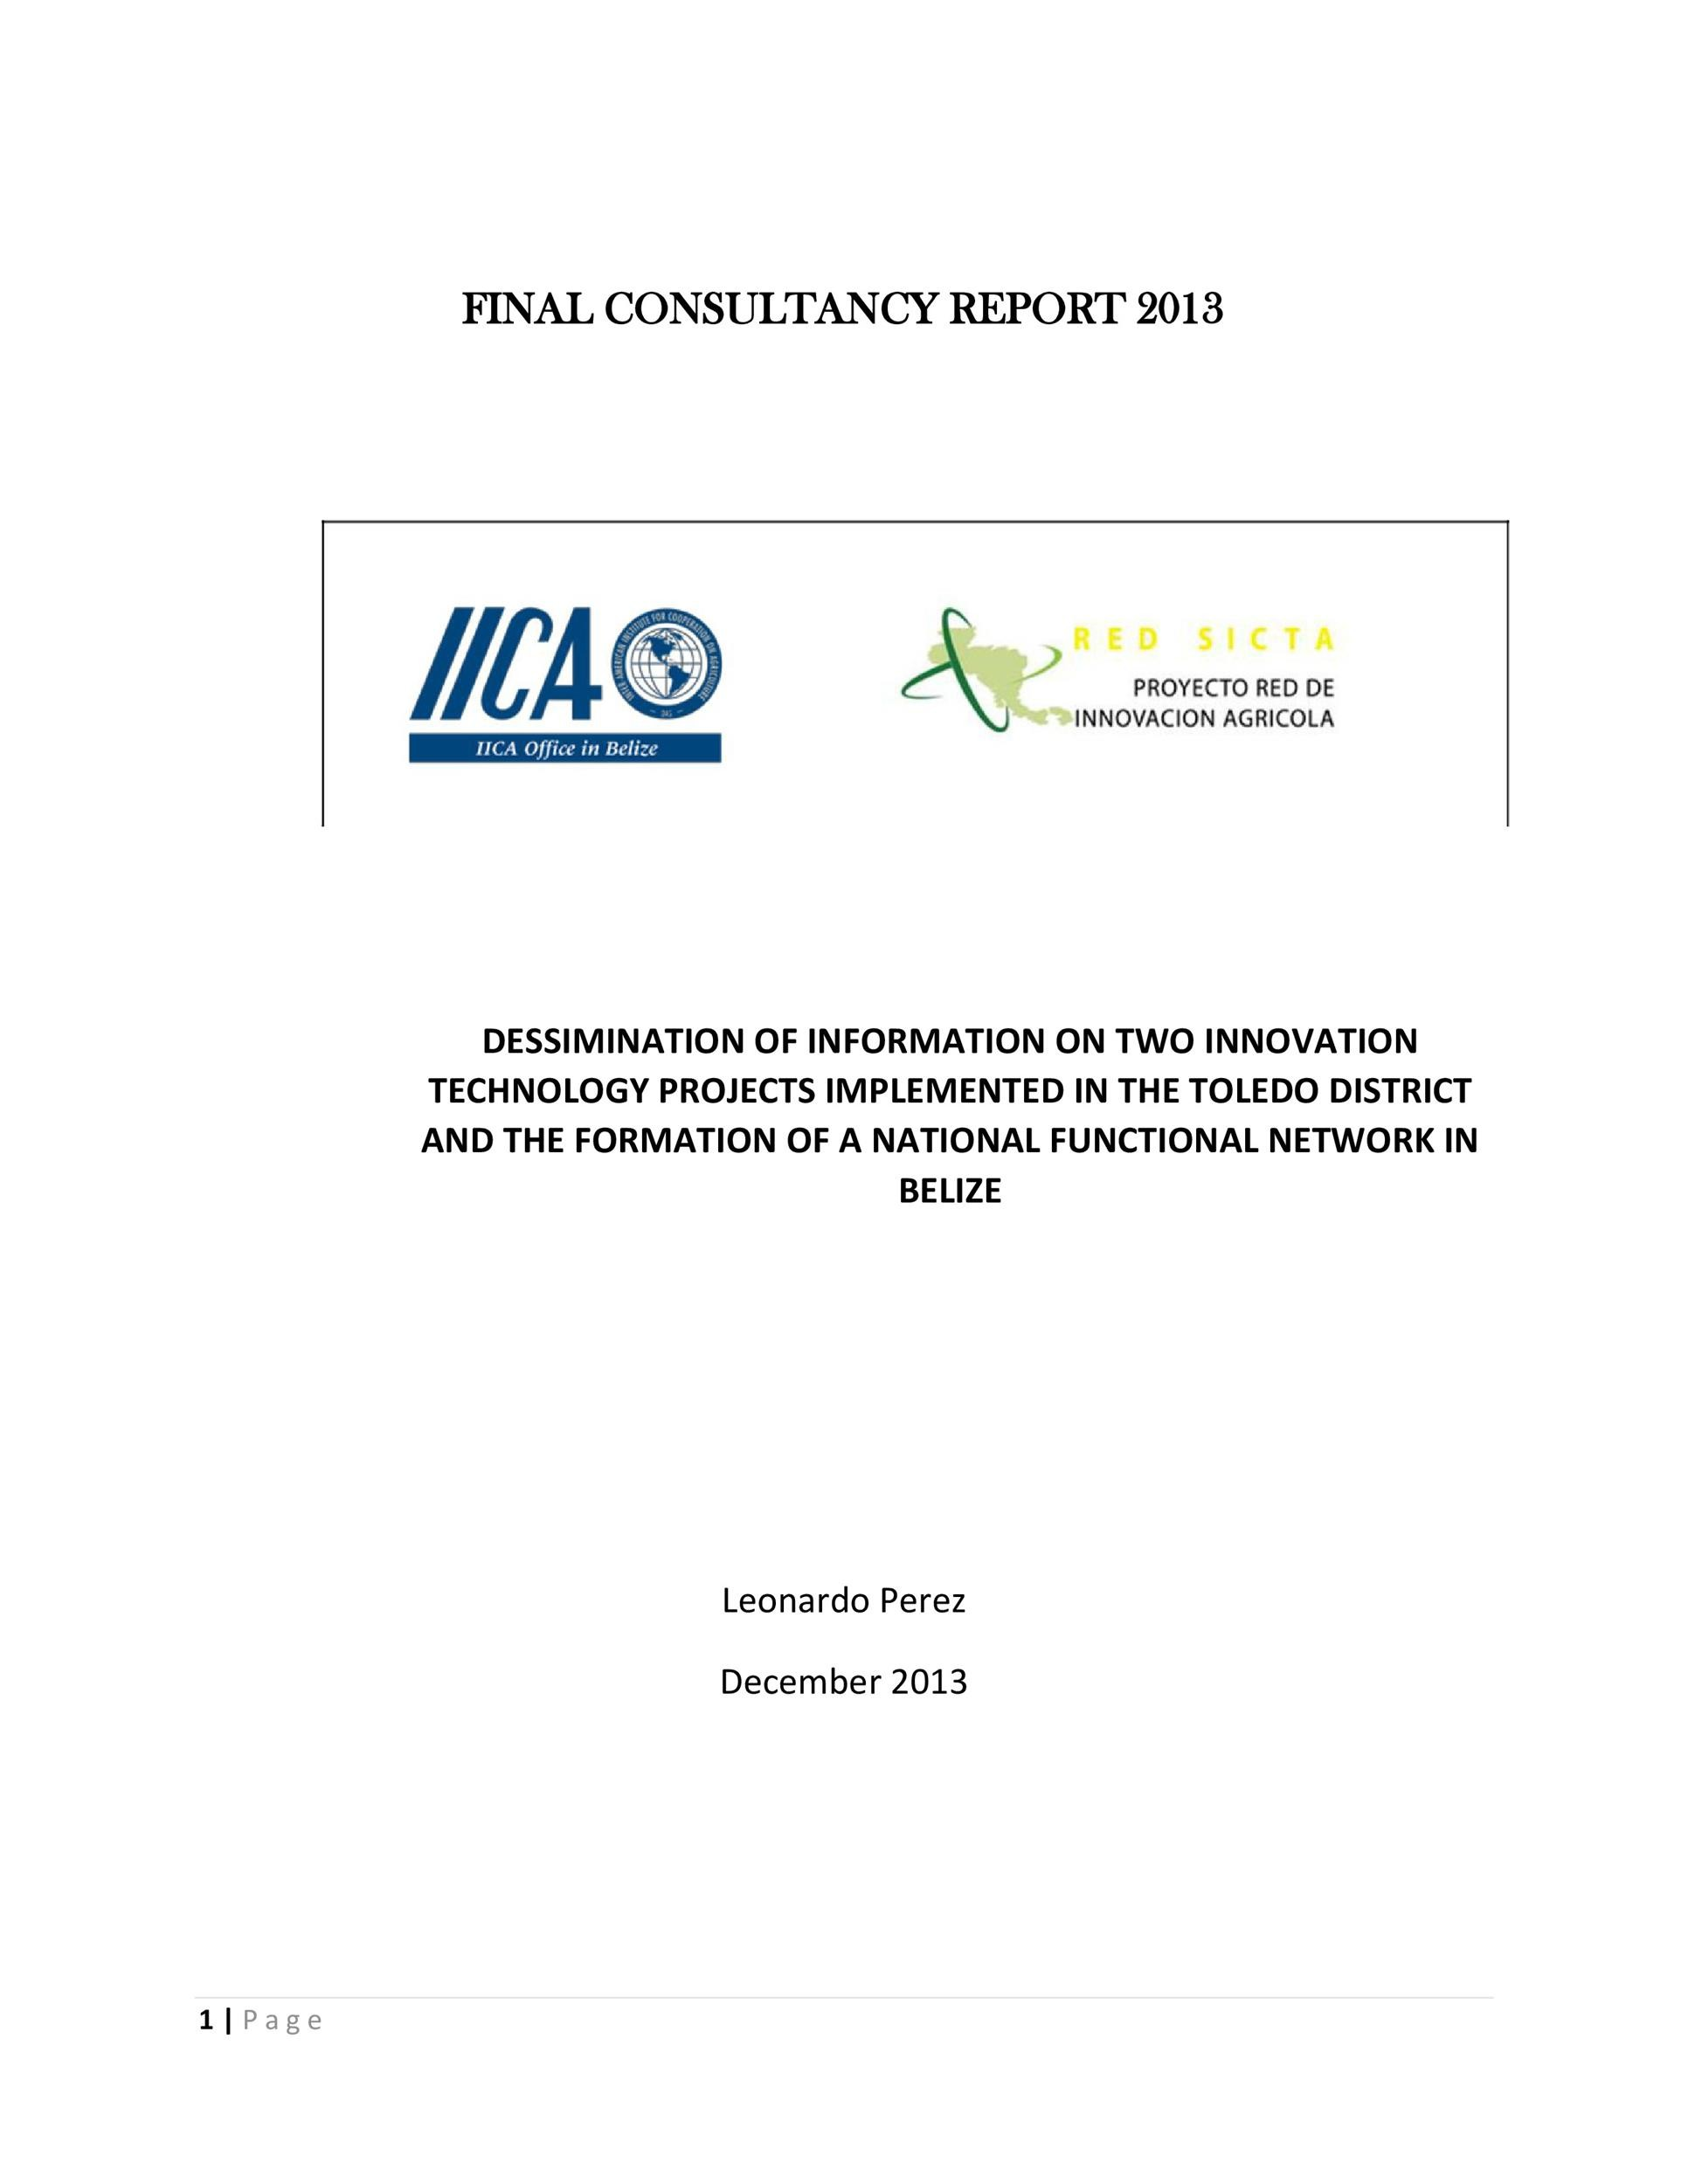 Free consulting report template 20